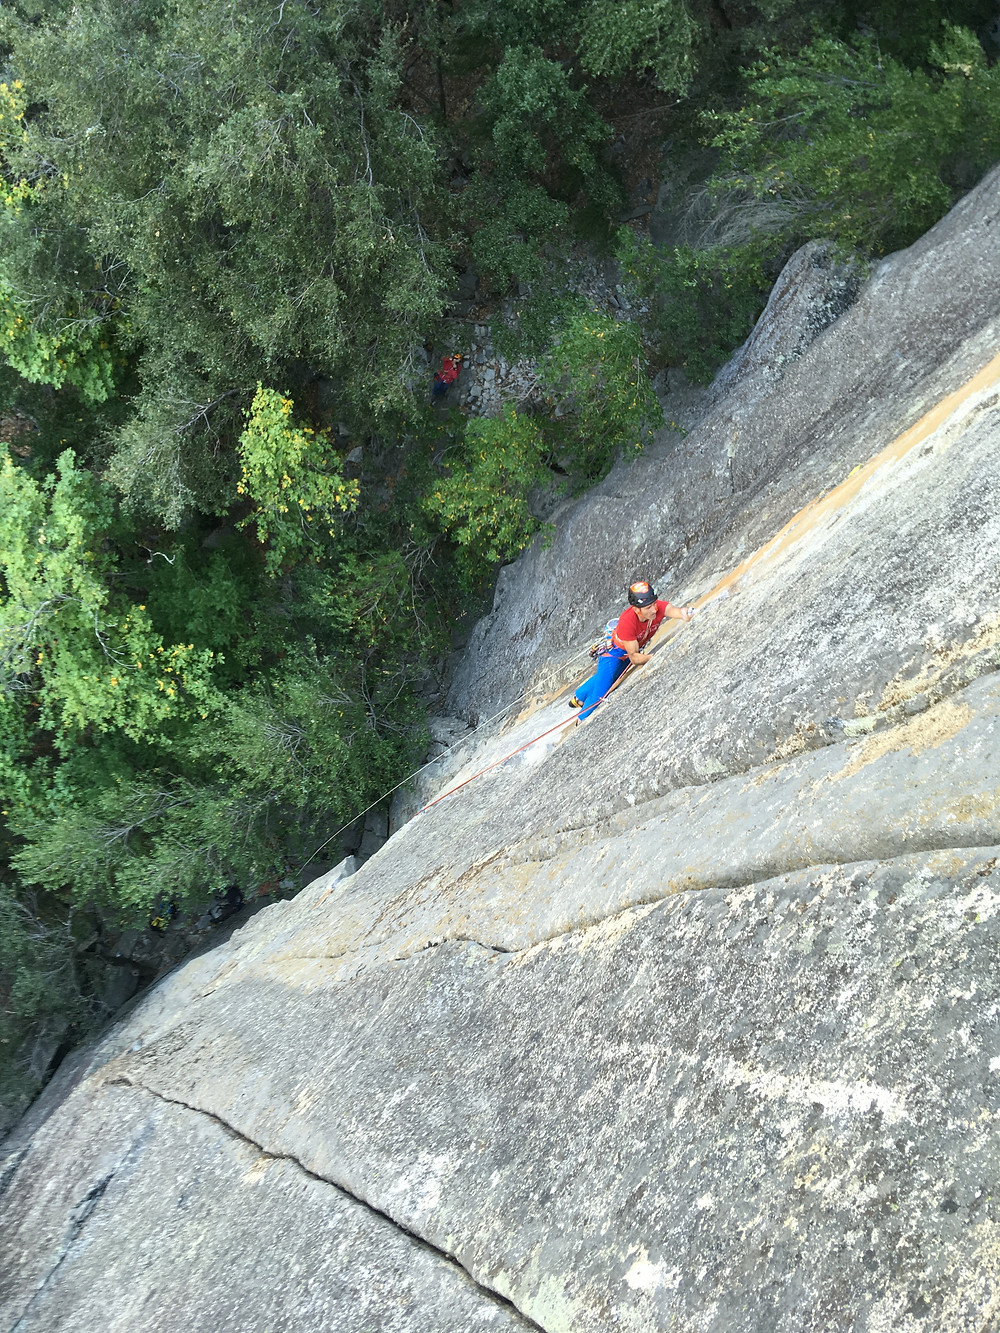 A friendly Italian hiking the first two pitches of Hotline